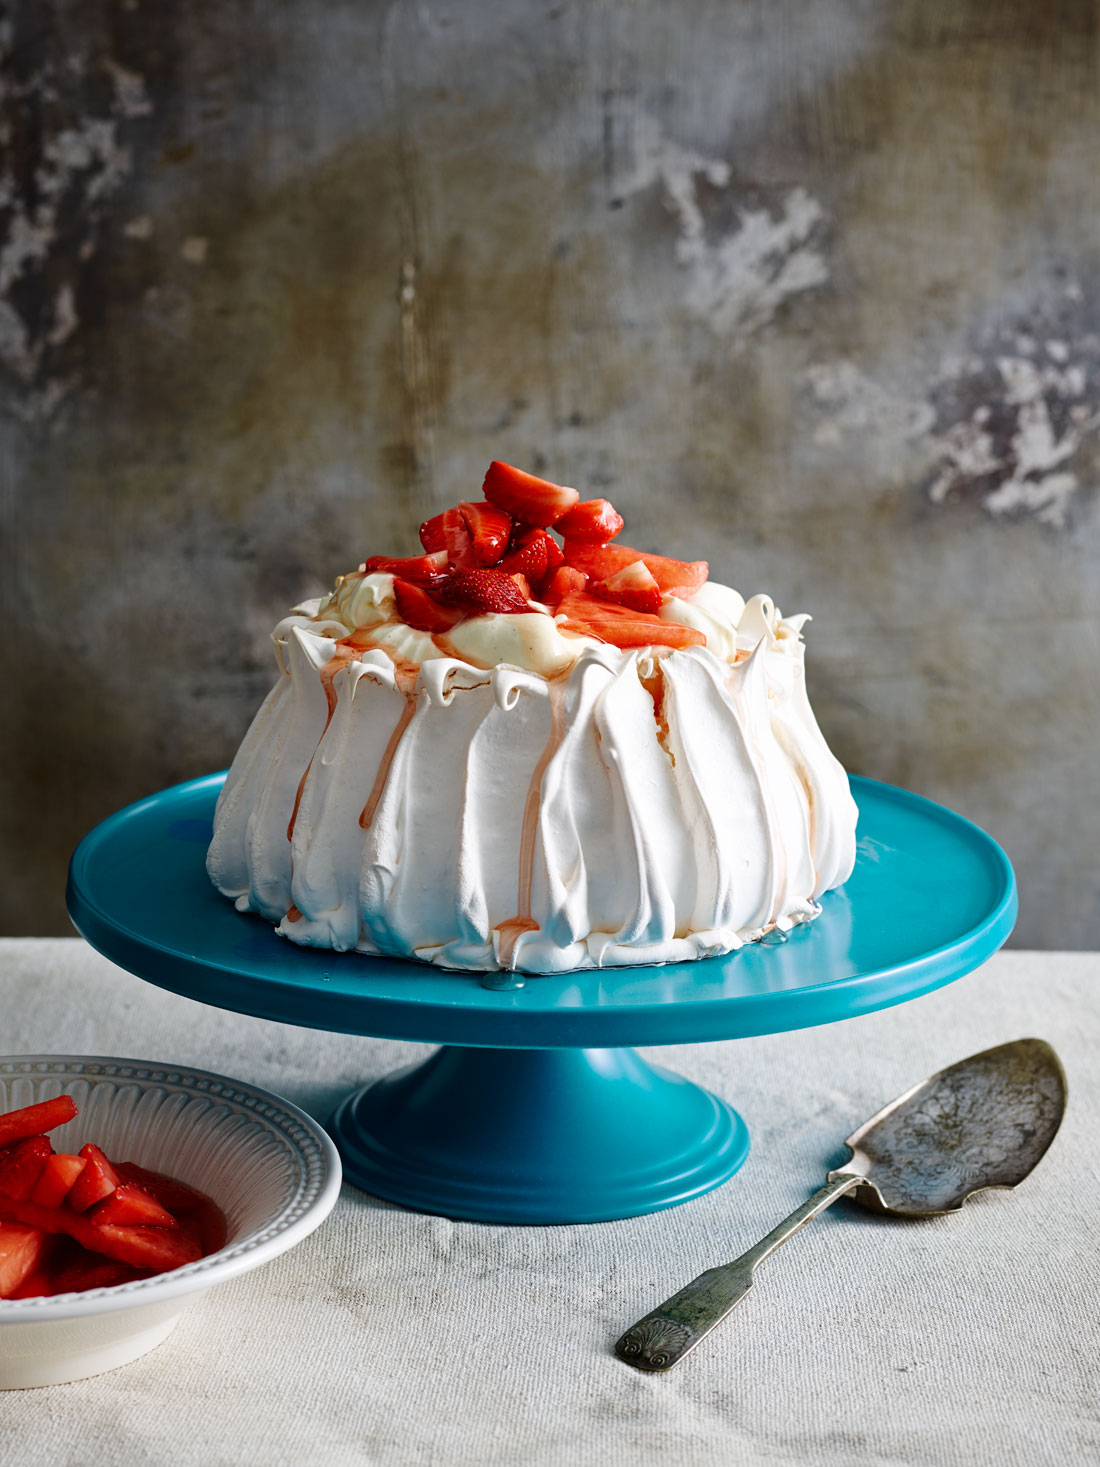 Hd Wallpaper Pack Pavlova Cake Wallpapers High Quality Download Free